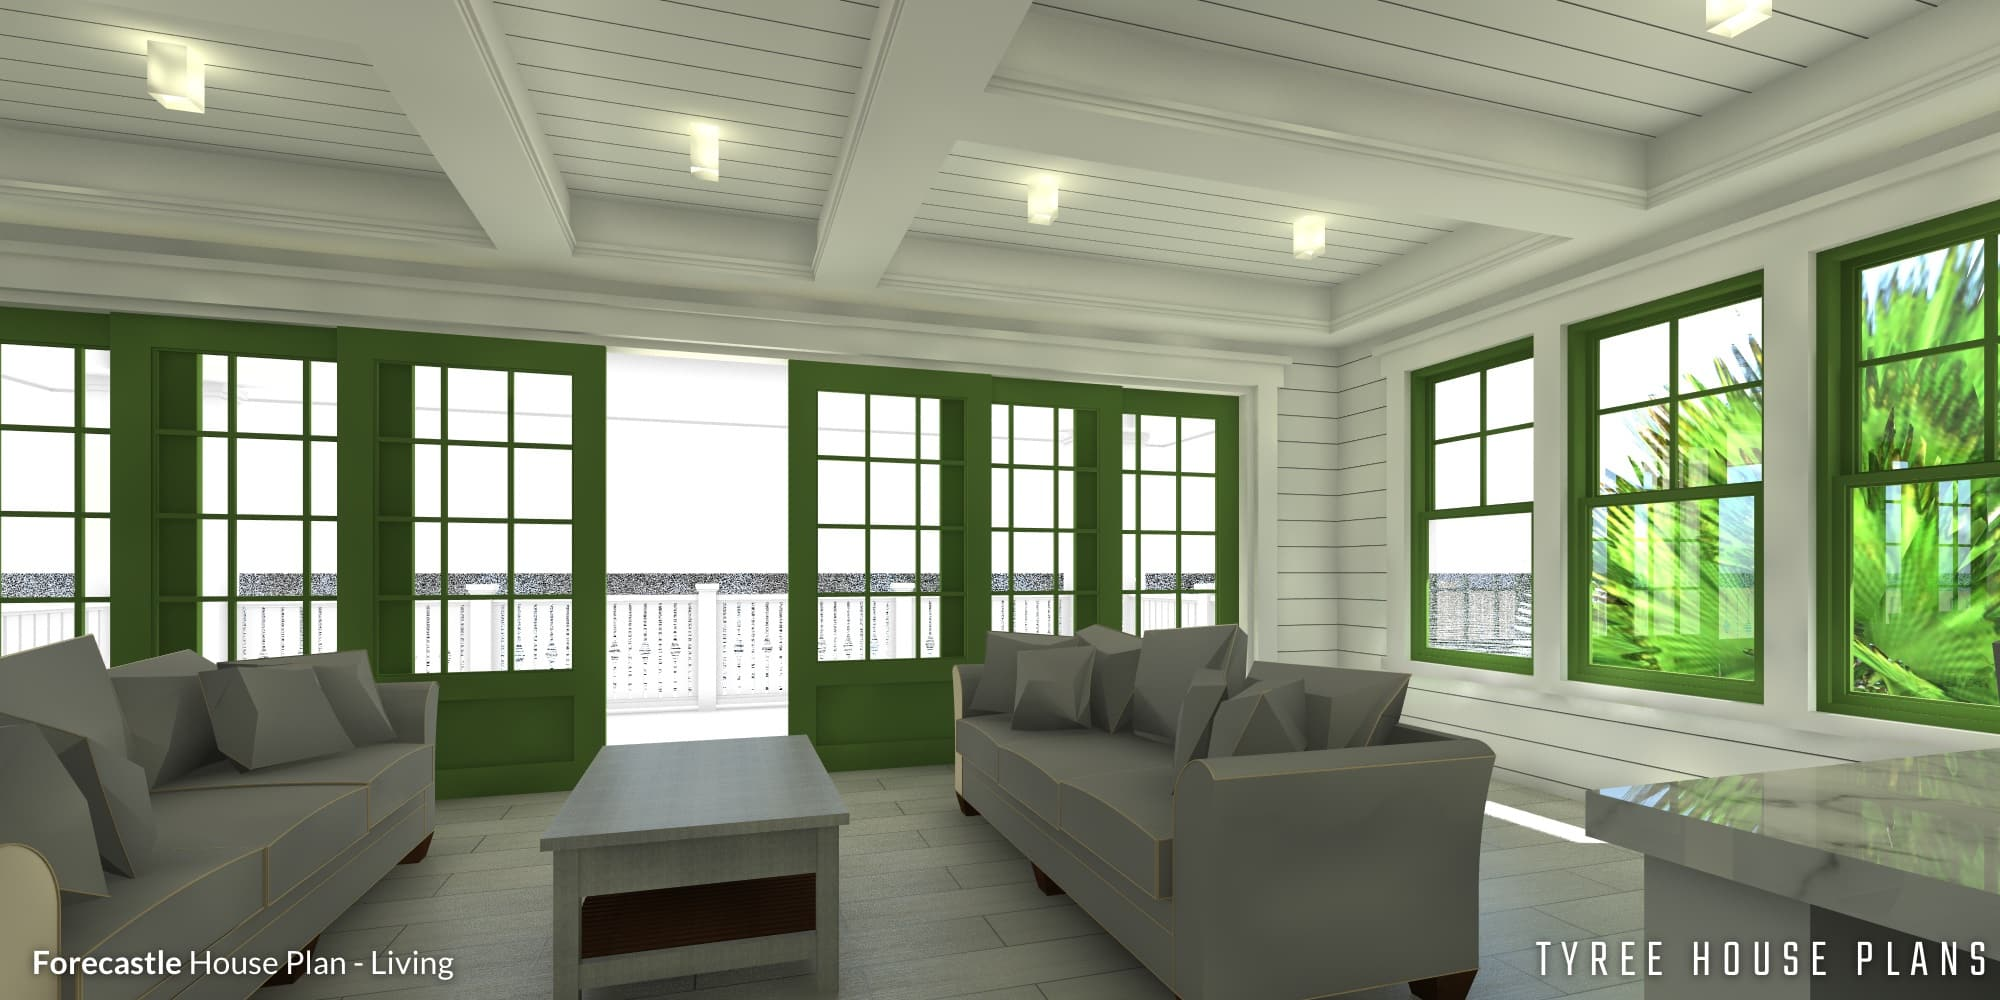 Living - Forecastle House Plan by Tyree House Plans